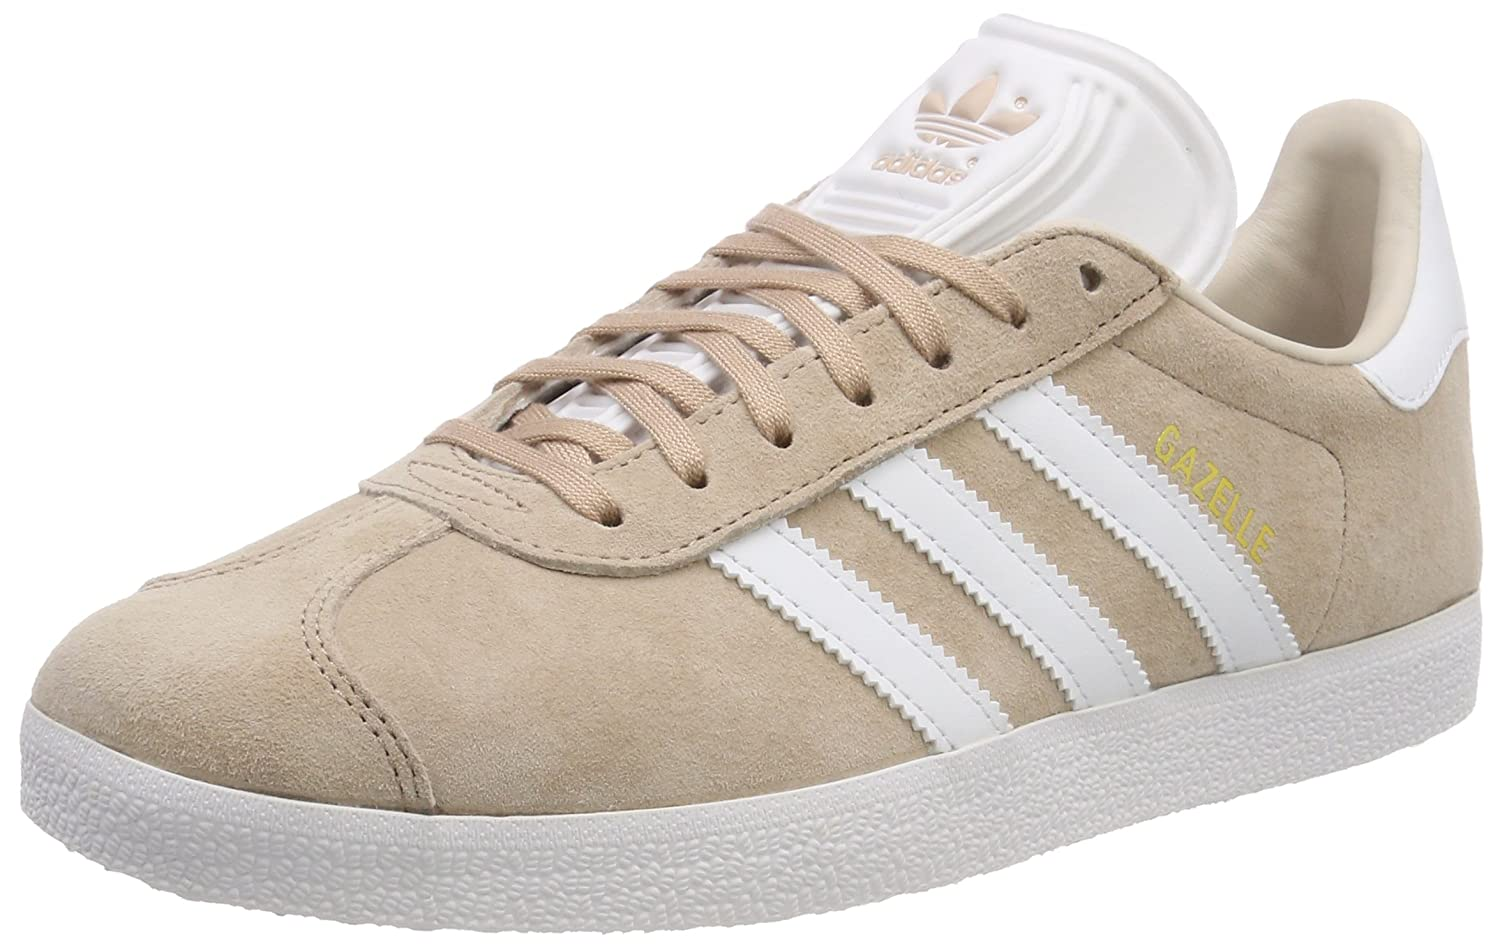 Amazon.com: Adidas Gazelle Womens Sneakers Pink: Clothing